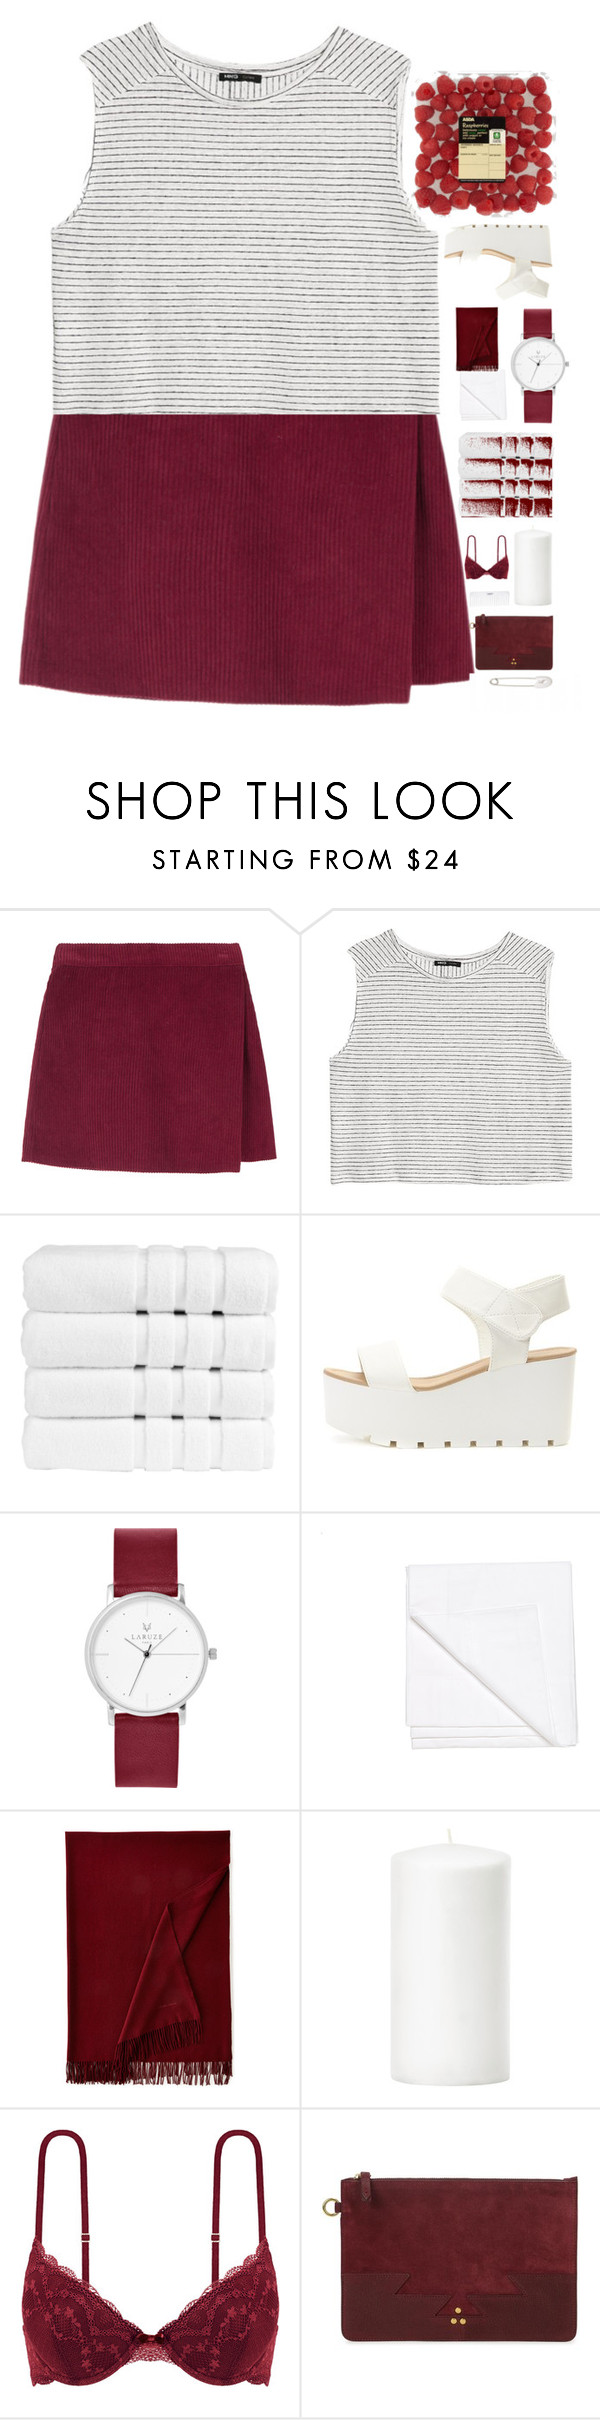 """Can you save my Heavy Dirty Soul?"" by abby-aqua ❤ liked on Polyvore featuring MANGO, Christy, Ralph Lauren Home, Conair, Jérôme Dreyfuss and Kristin Cavallari"